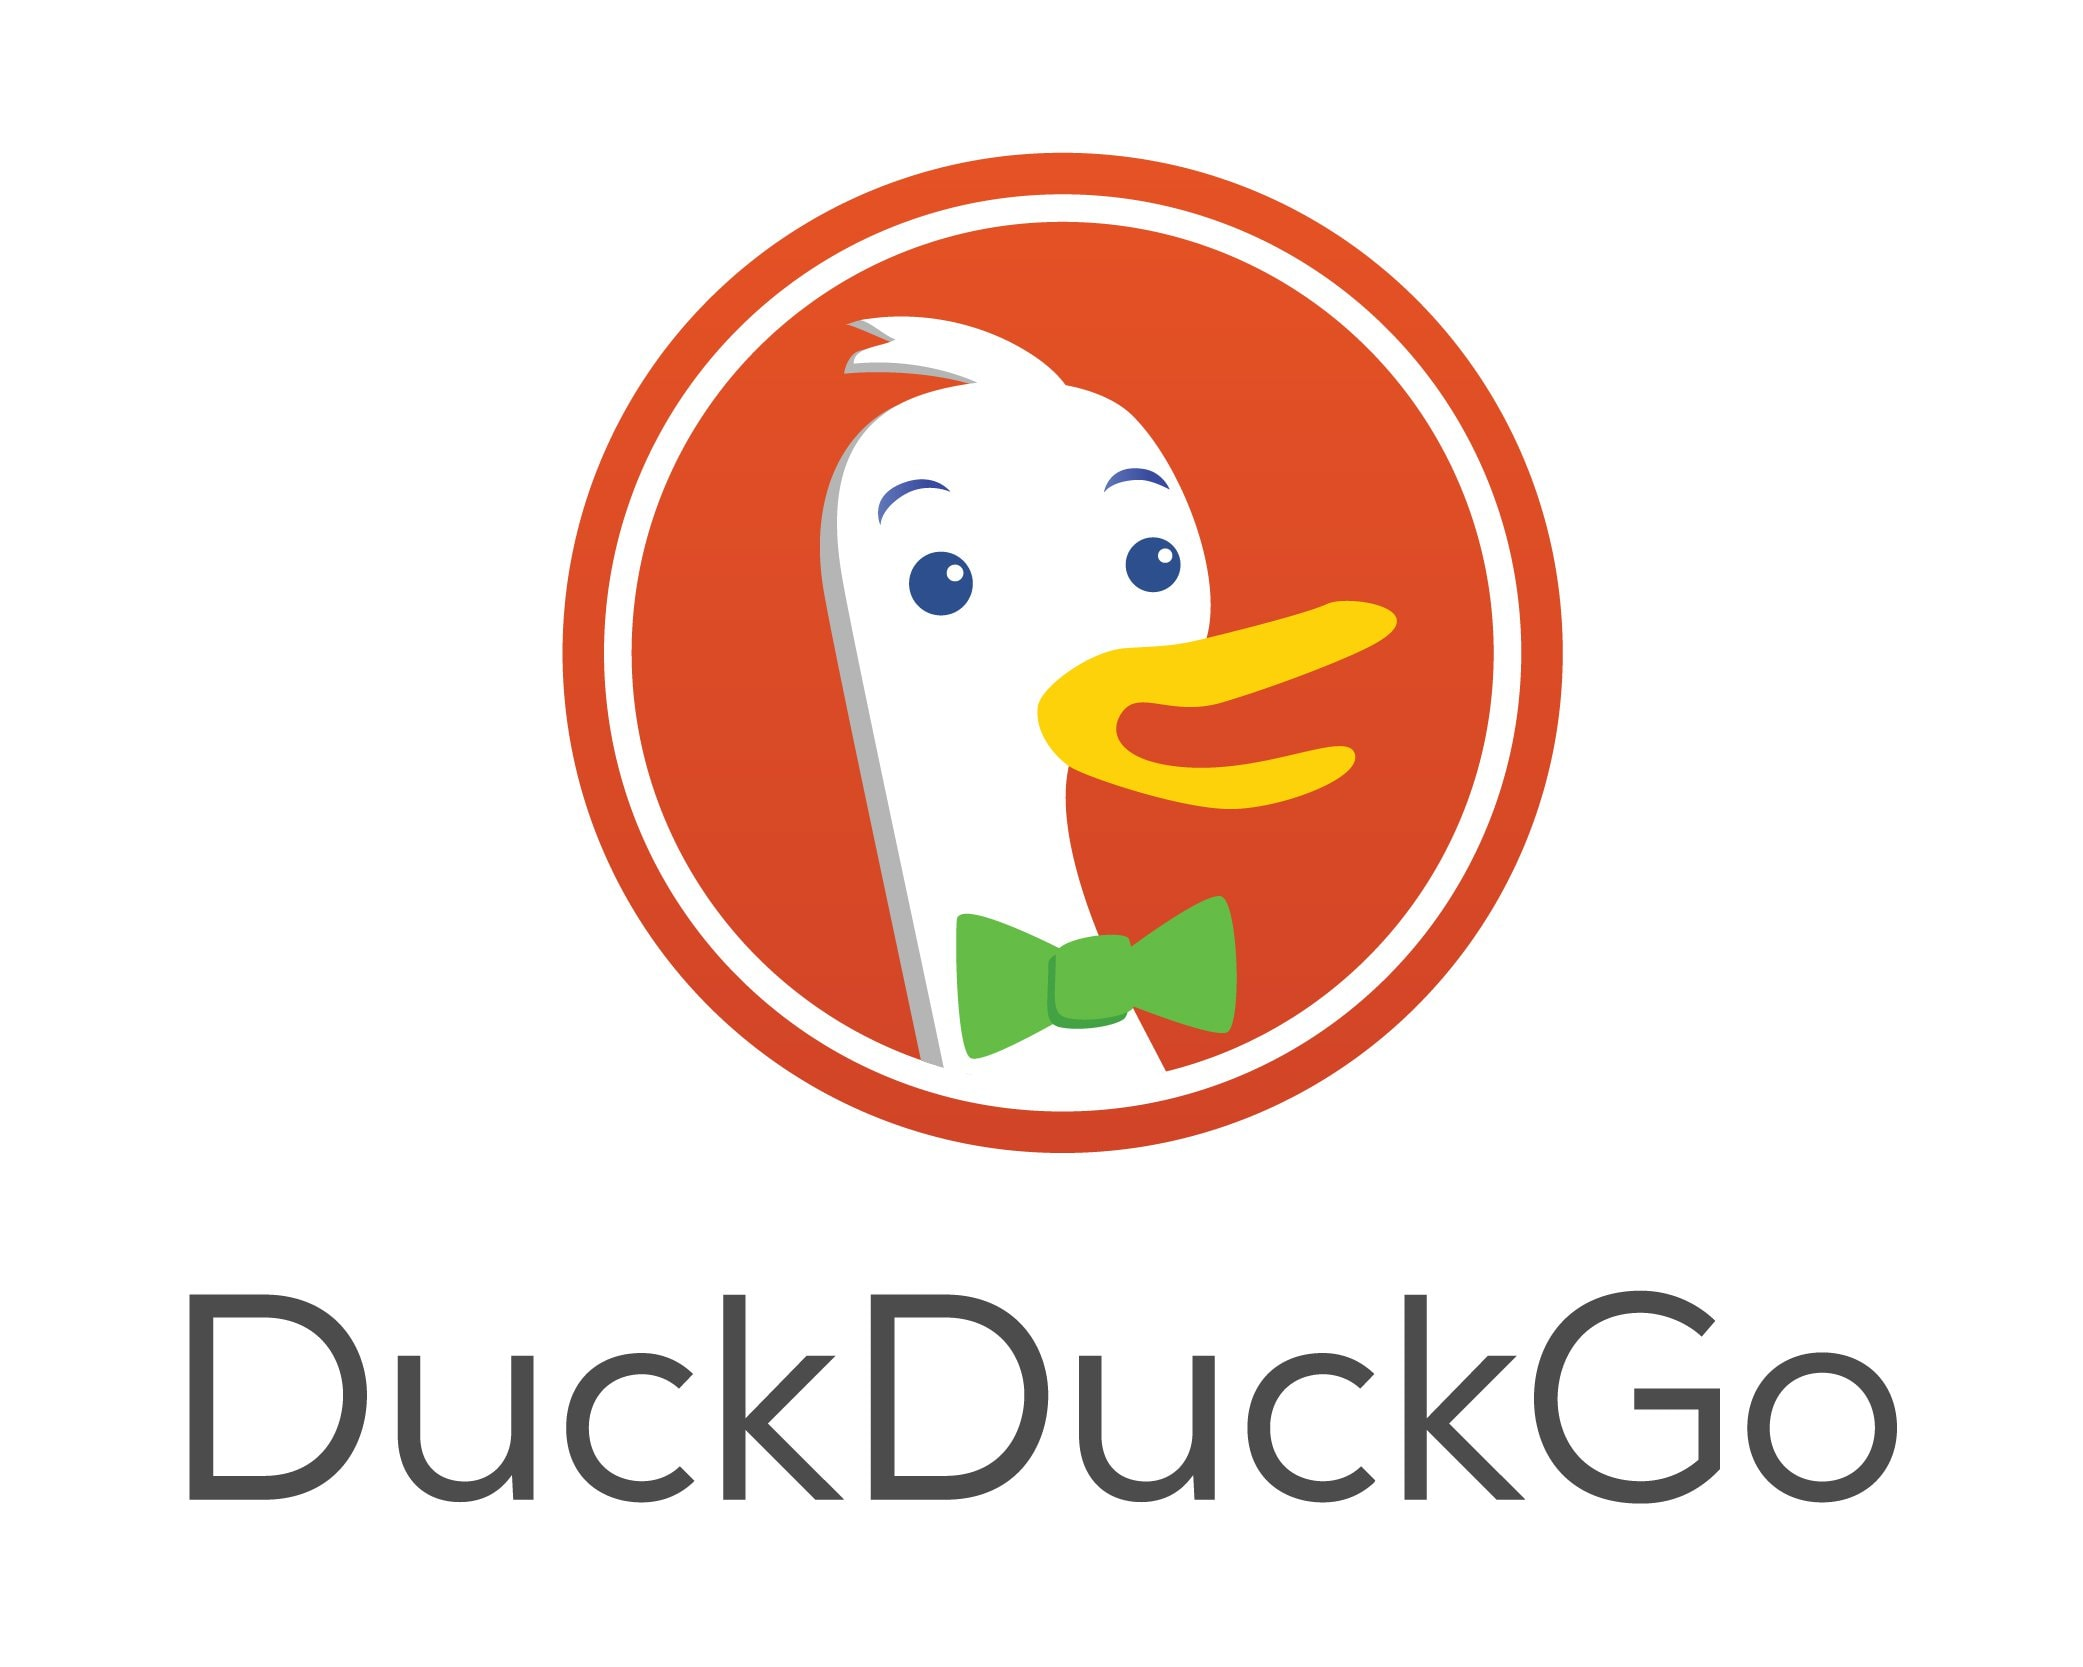 DuckDuckGo offers great image search, plus it doesn't track you.